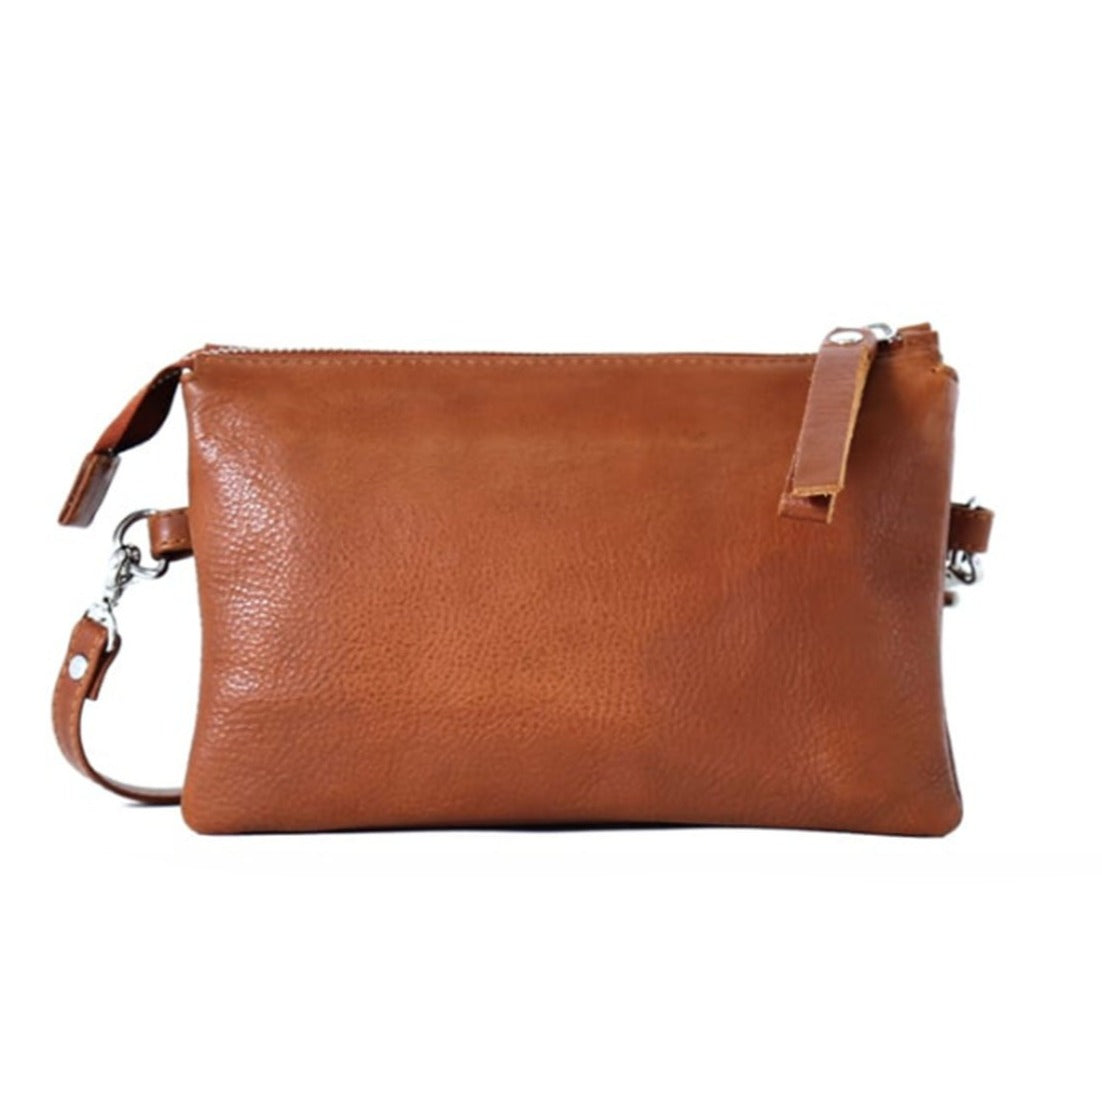 LUMI Venla All-In-One Leather Pouch, Cognac